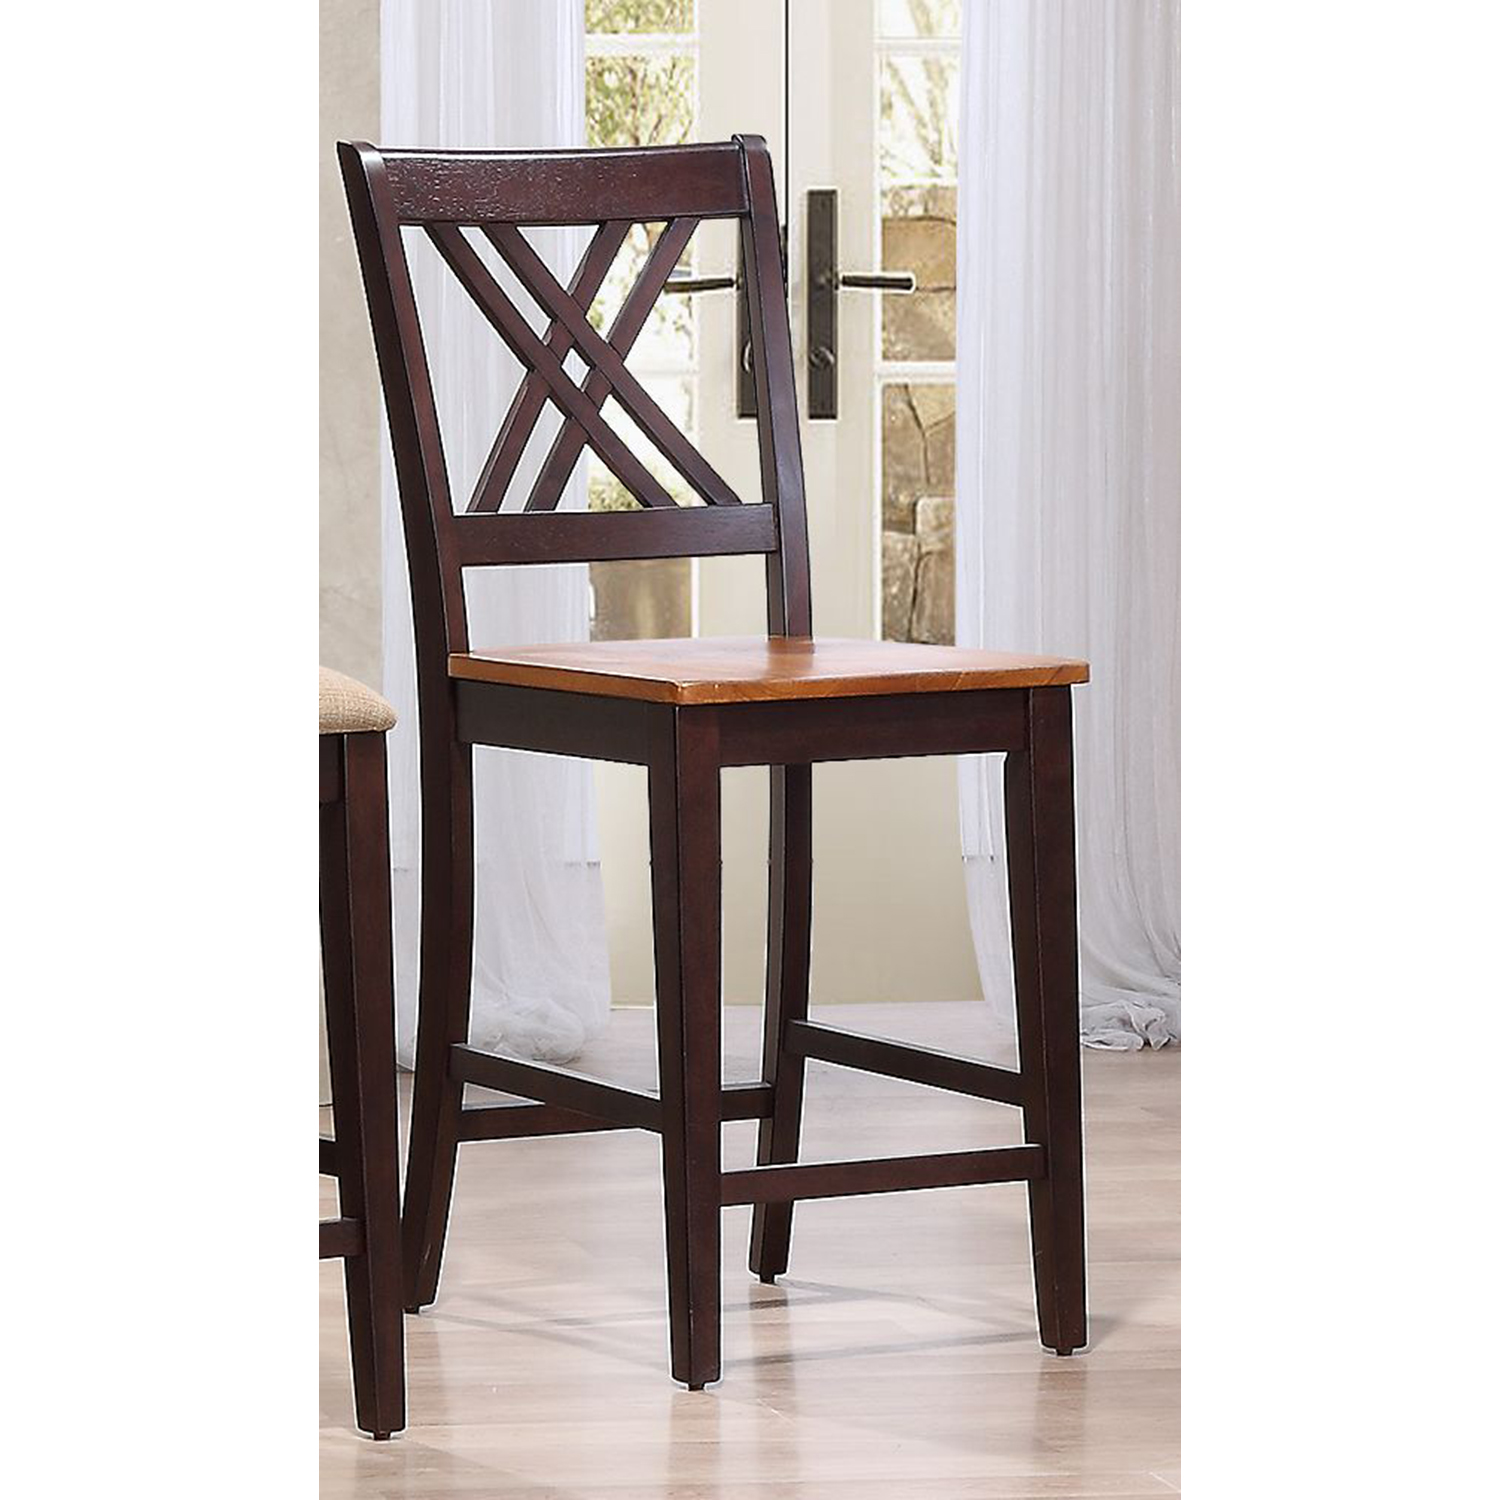 "Double X-Back 24"" Counter Stool - Whiskey and Mocha - ICON-STC56-WY-MA"